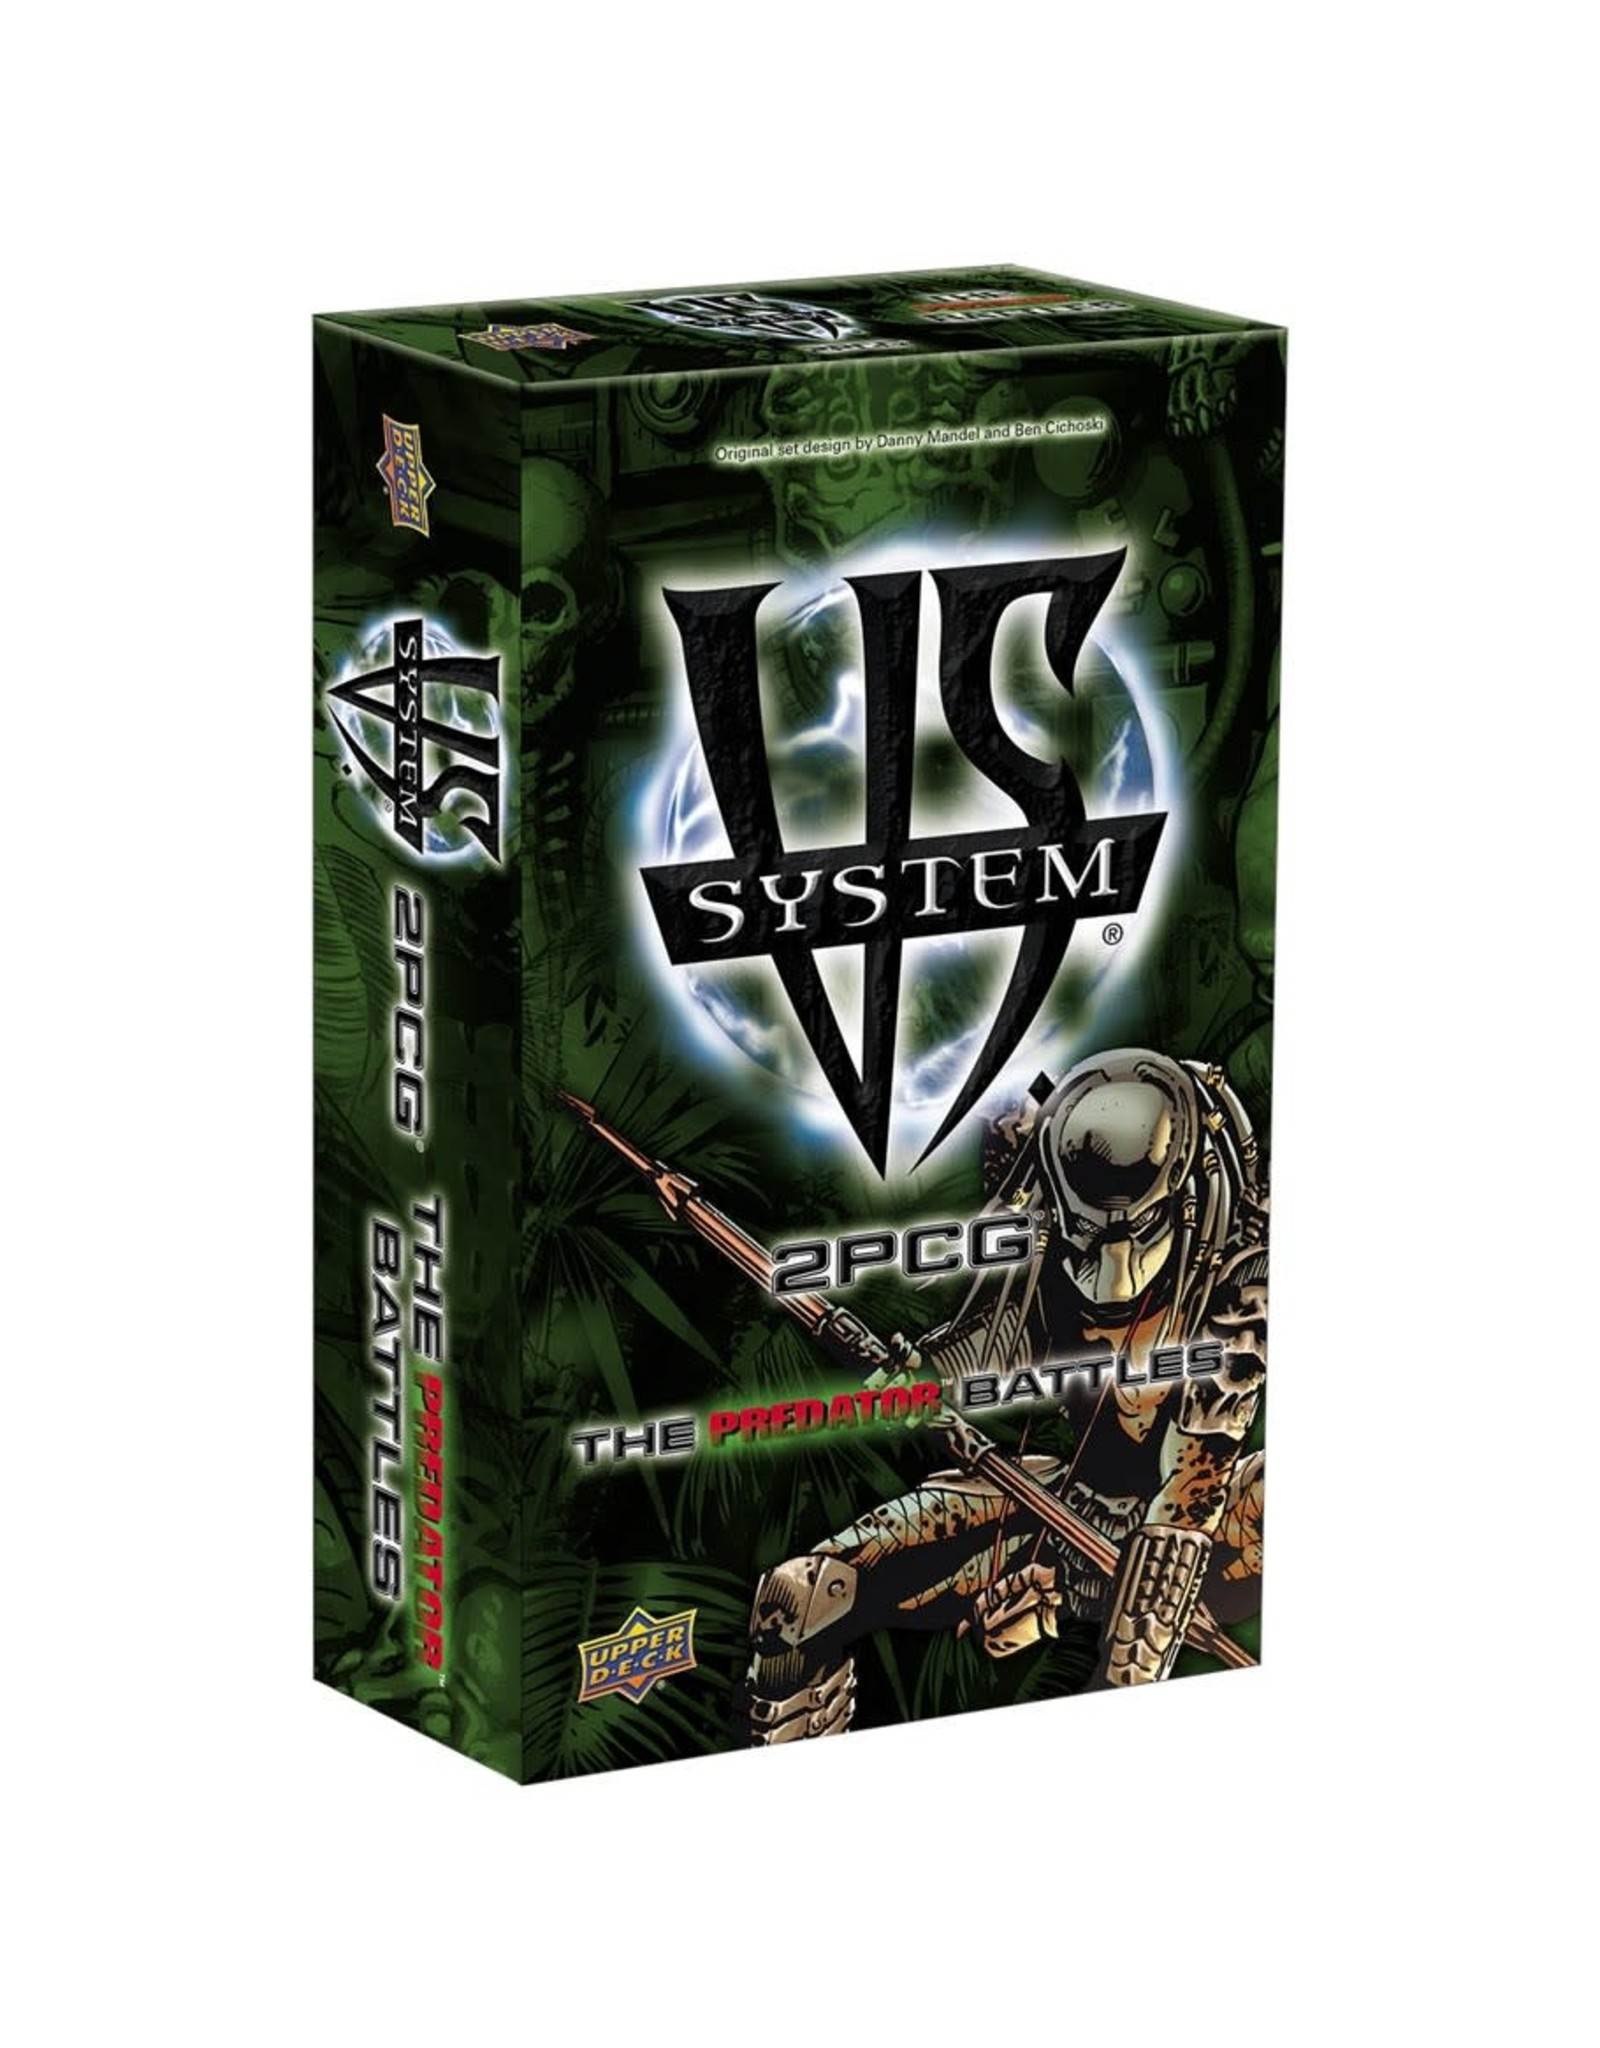 Upper Deck VS System 2PCG: The Predator Battles